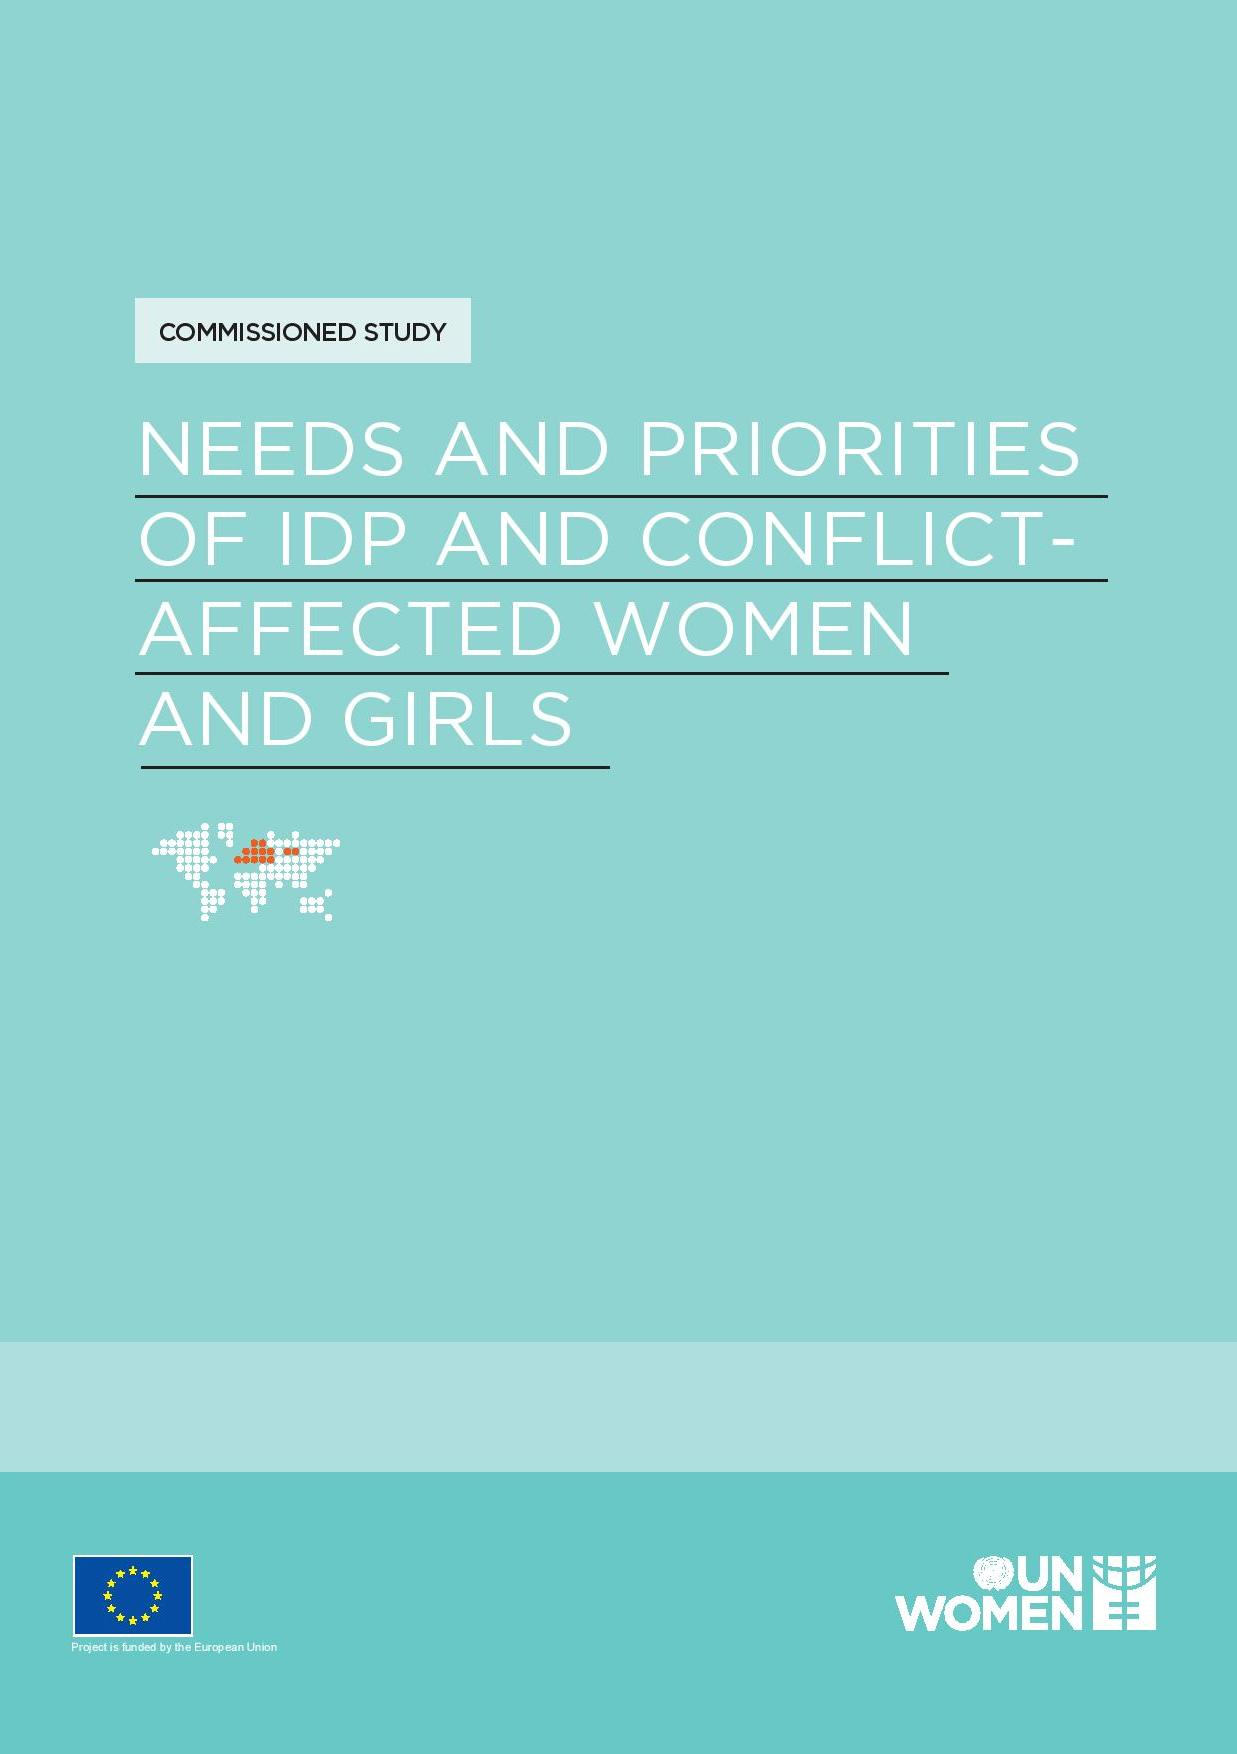 Needs and Priorities of IDP and Conflict-Affected Women and Girls